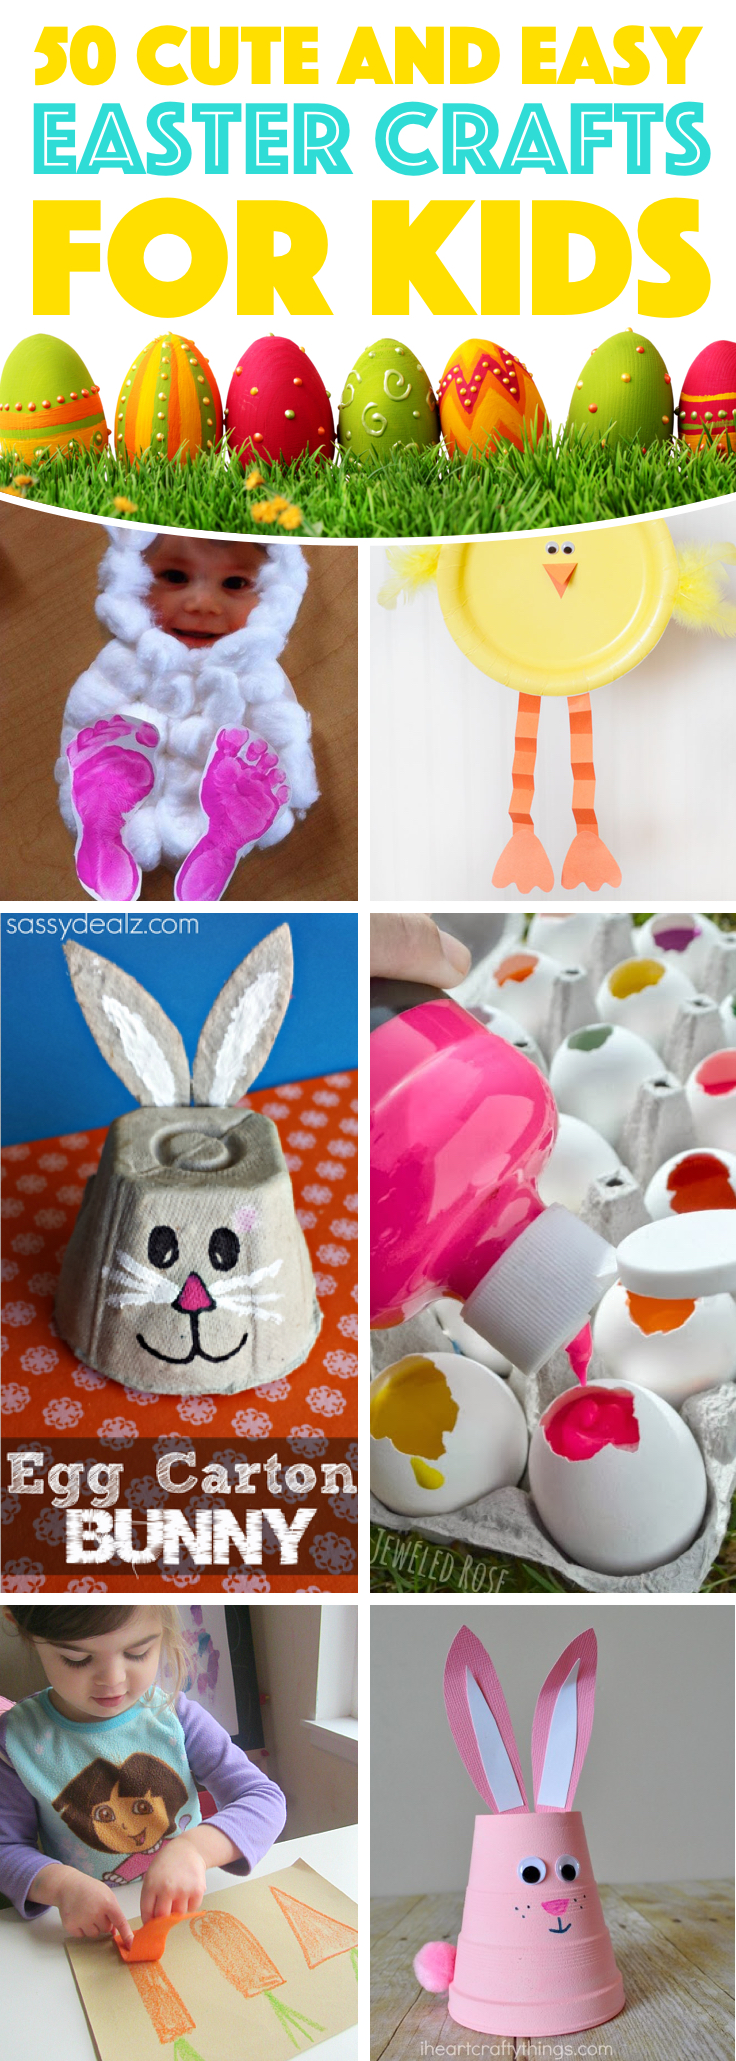 Cute and Creative Easter Crafts For Kids